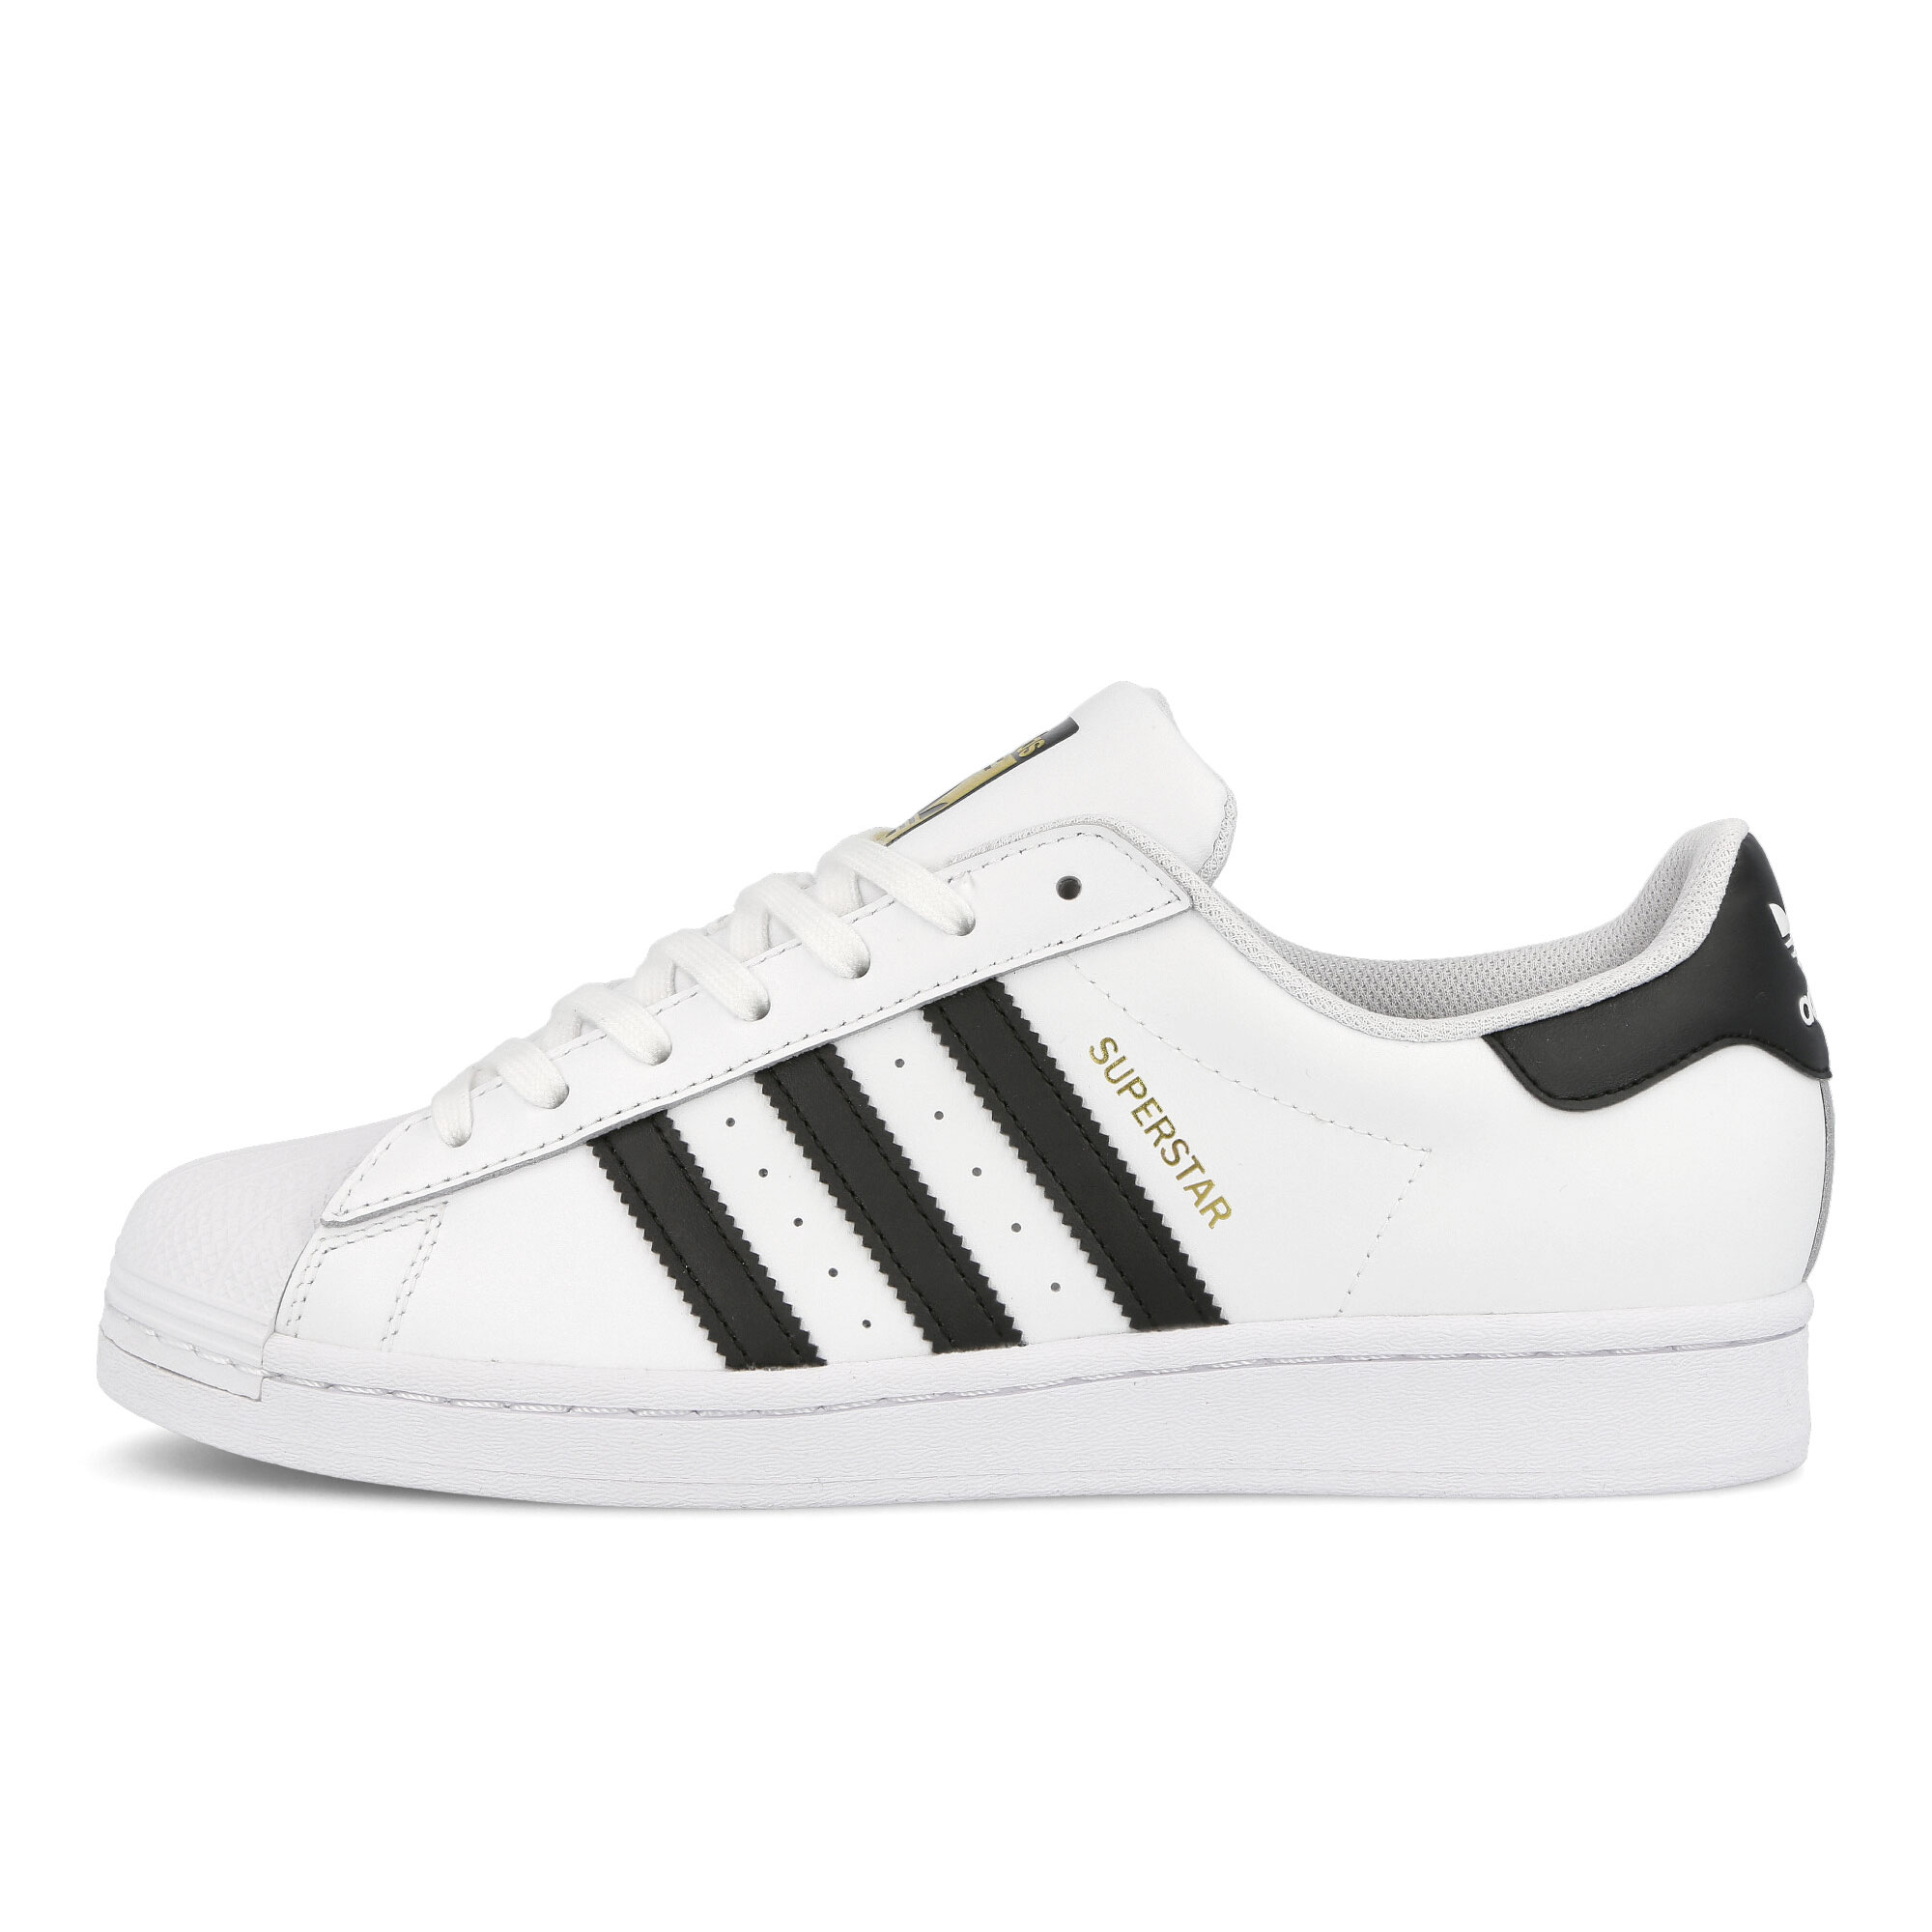 adidas superstar berlin price